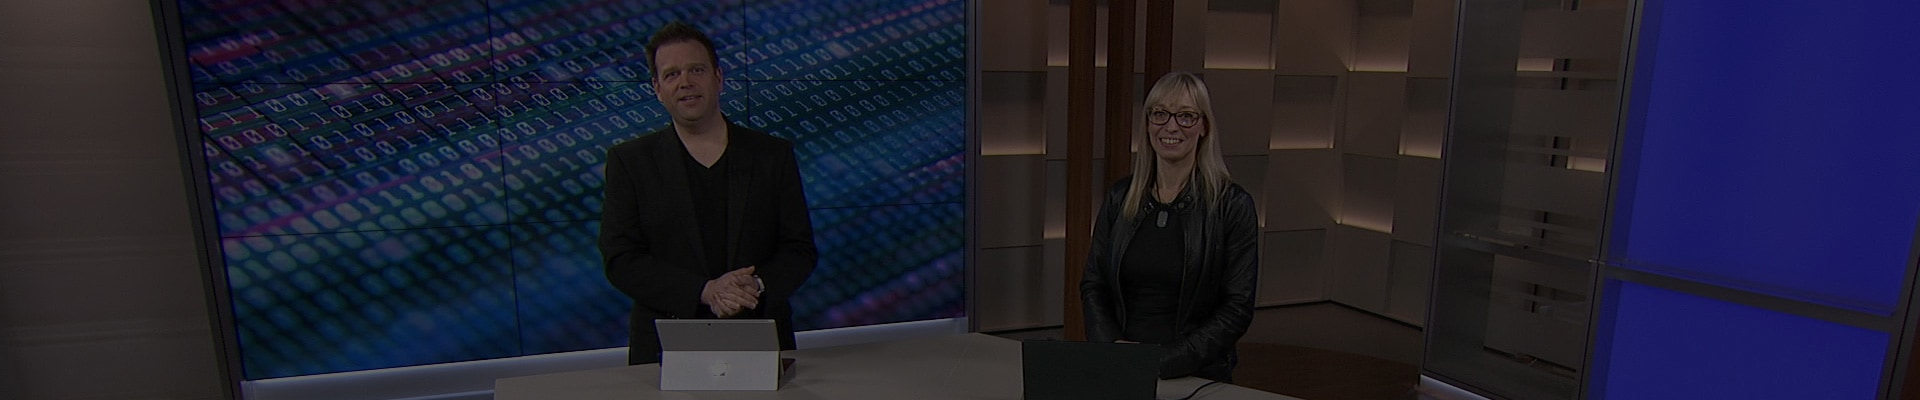 Still image from webcast video with two people in a studio at a counter with a laptop and a Surface Pro